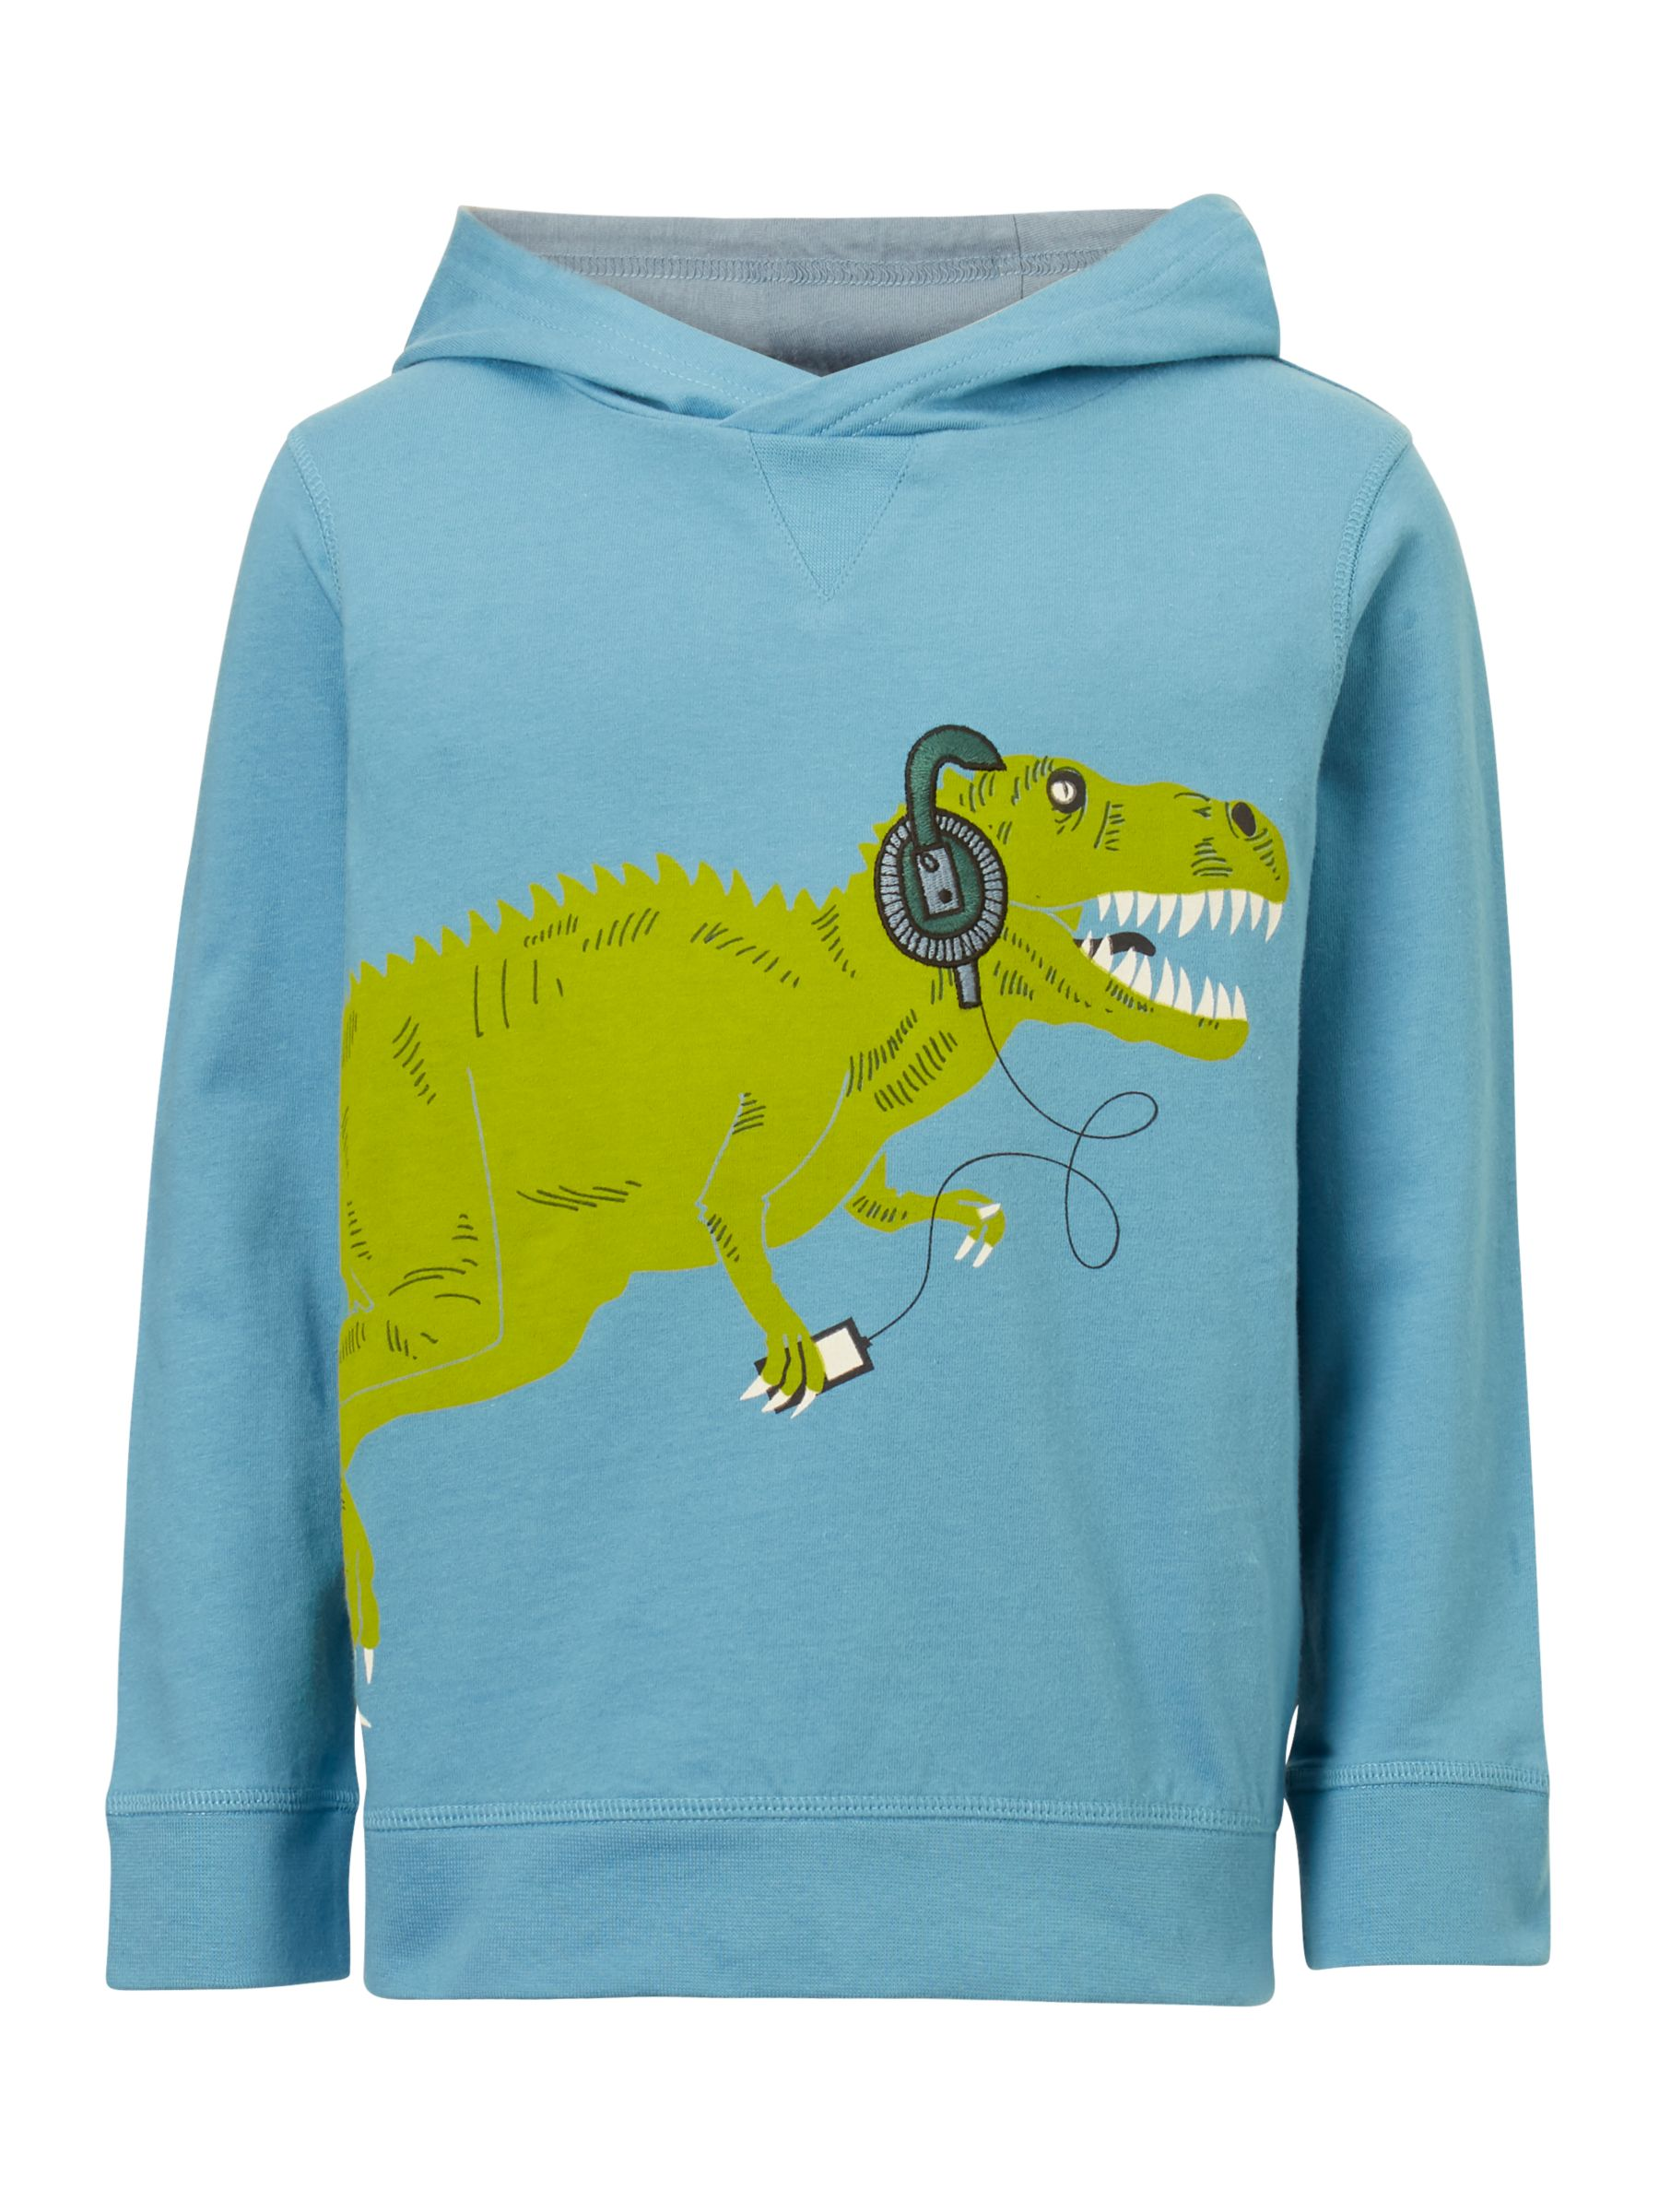 Dinosaur Hoodie Pillow In Japan they